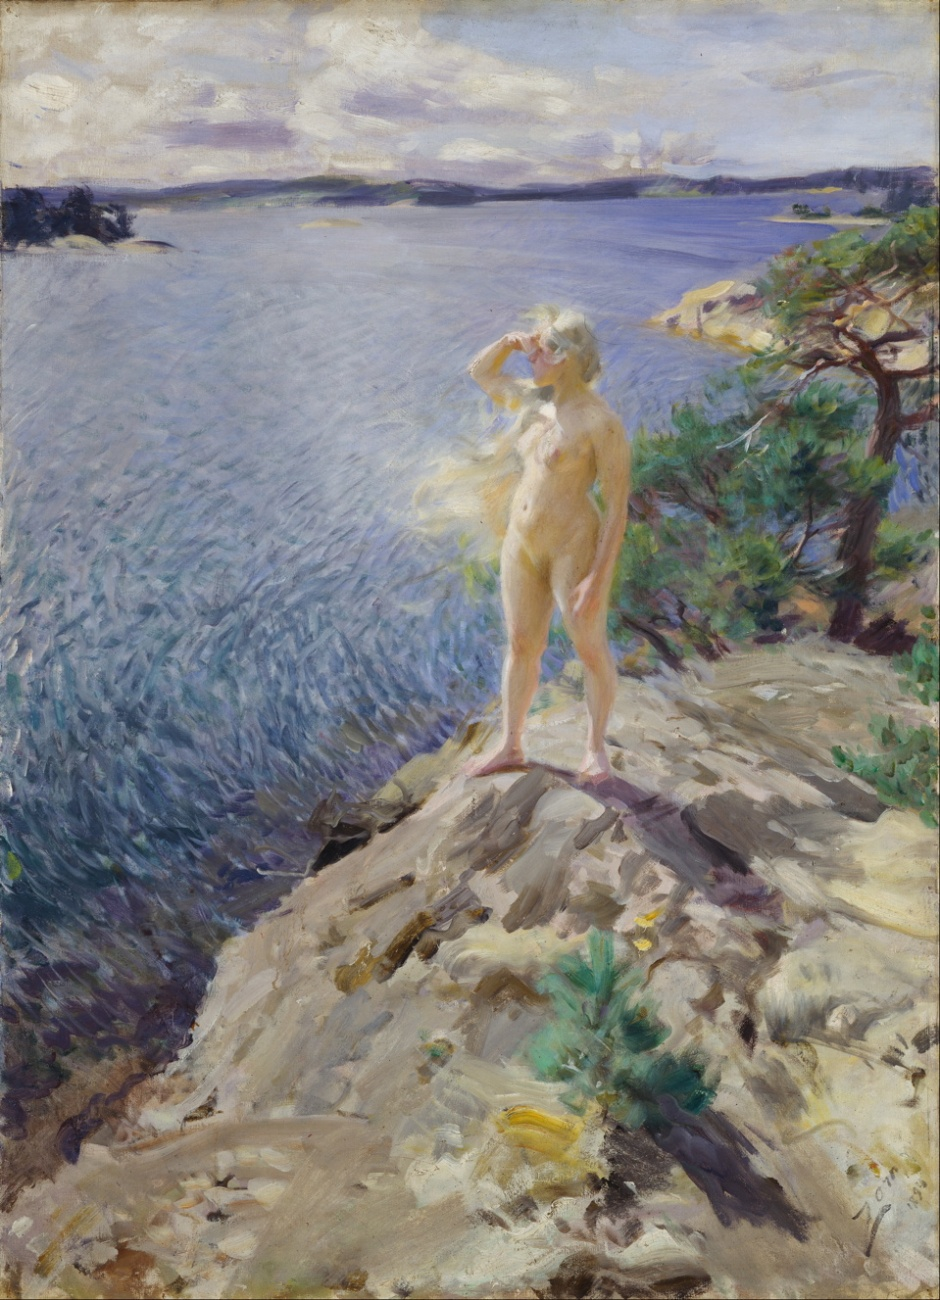 Anders Zorn, In the Skerries (1894), oil on canvas, 125.5 x 90.5 cm, Nationalgalleriet, Oslo. Wikimedia Commons.